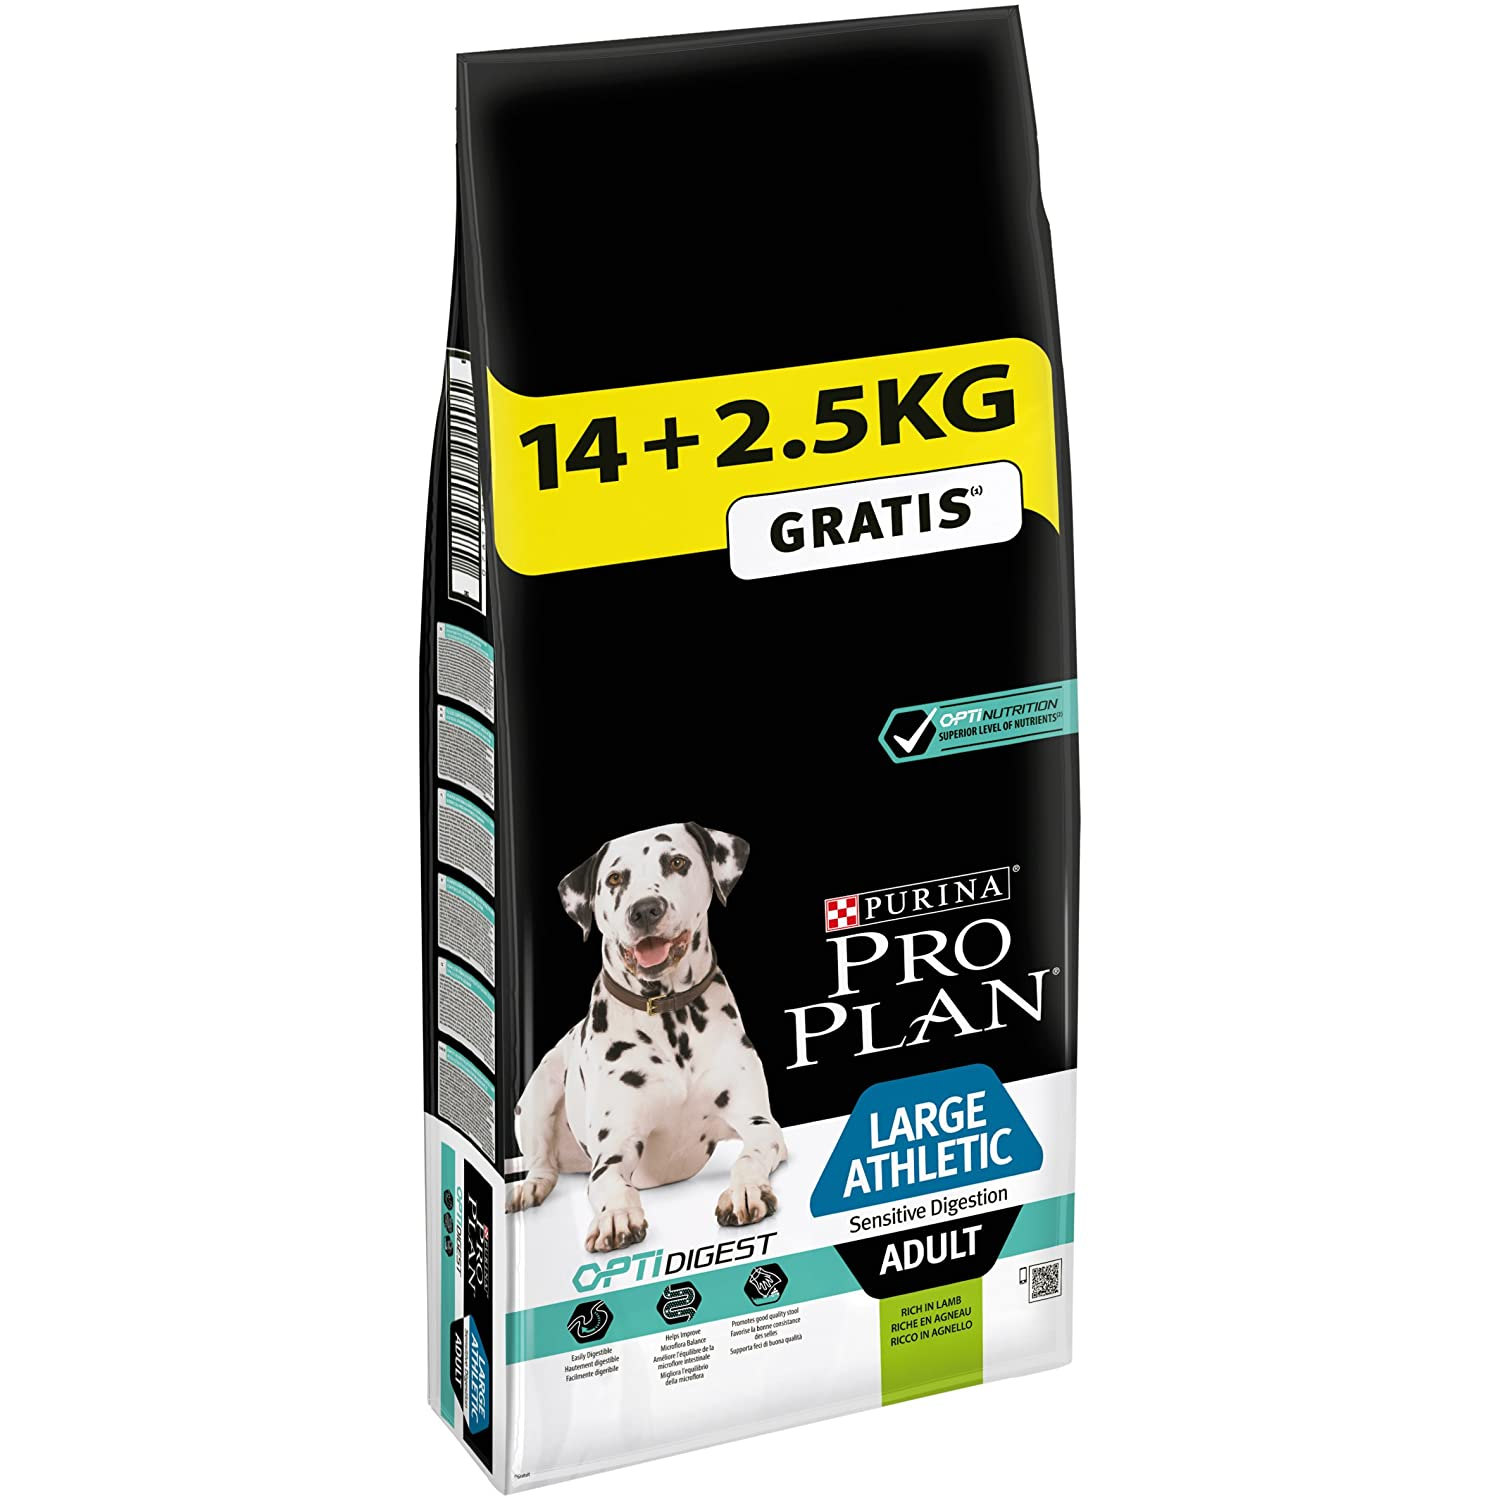 Pro Plan Dog Large Athletic Adult, Sensitive Digestion, Riche en Agneau, croquettes Sacs 12294622